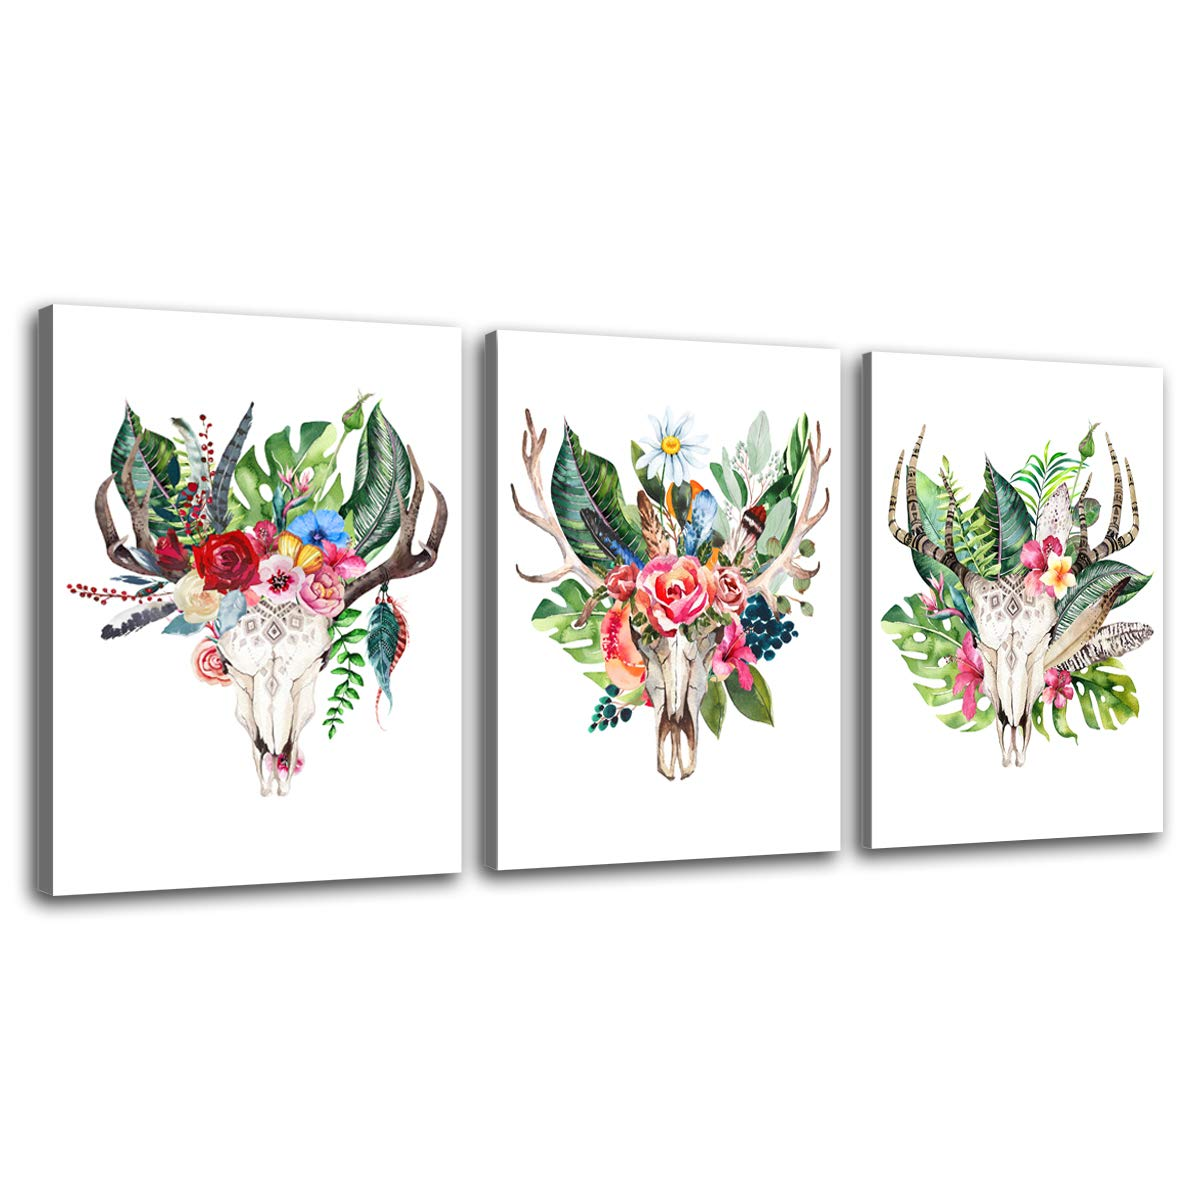 Deer canvas prints wall decor art simple life antlers greenery flowers decoration painting contemporary pictures 12 x 16 3 pieces set moderntropic plants